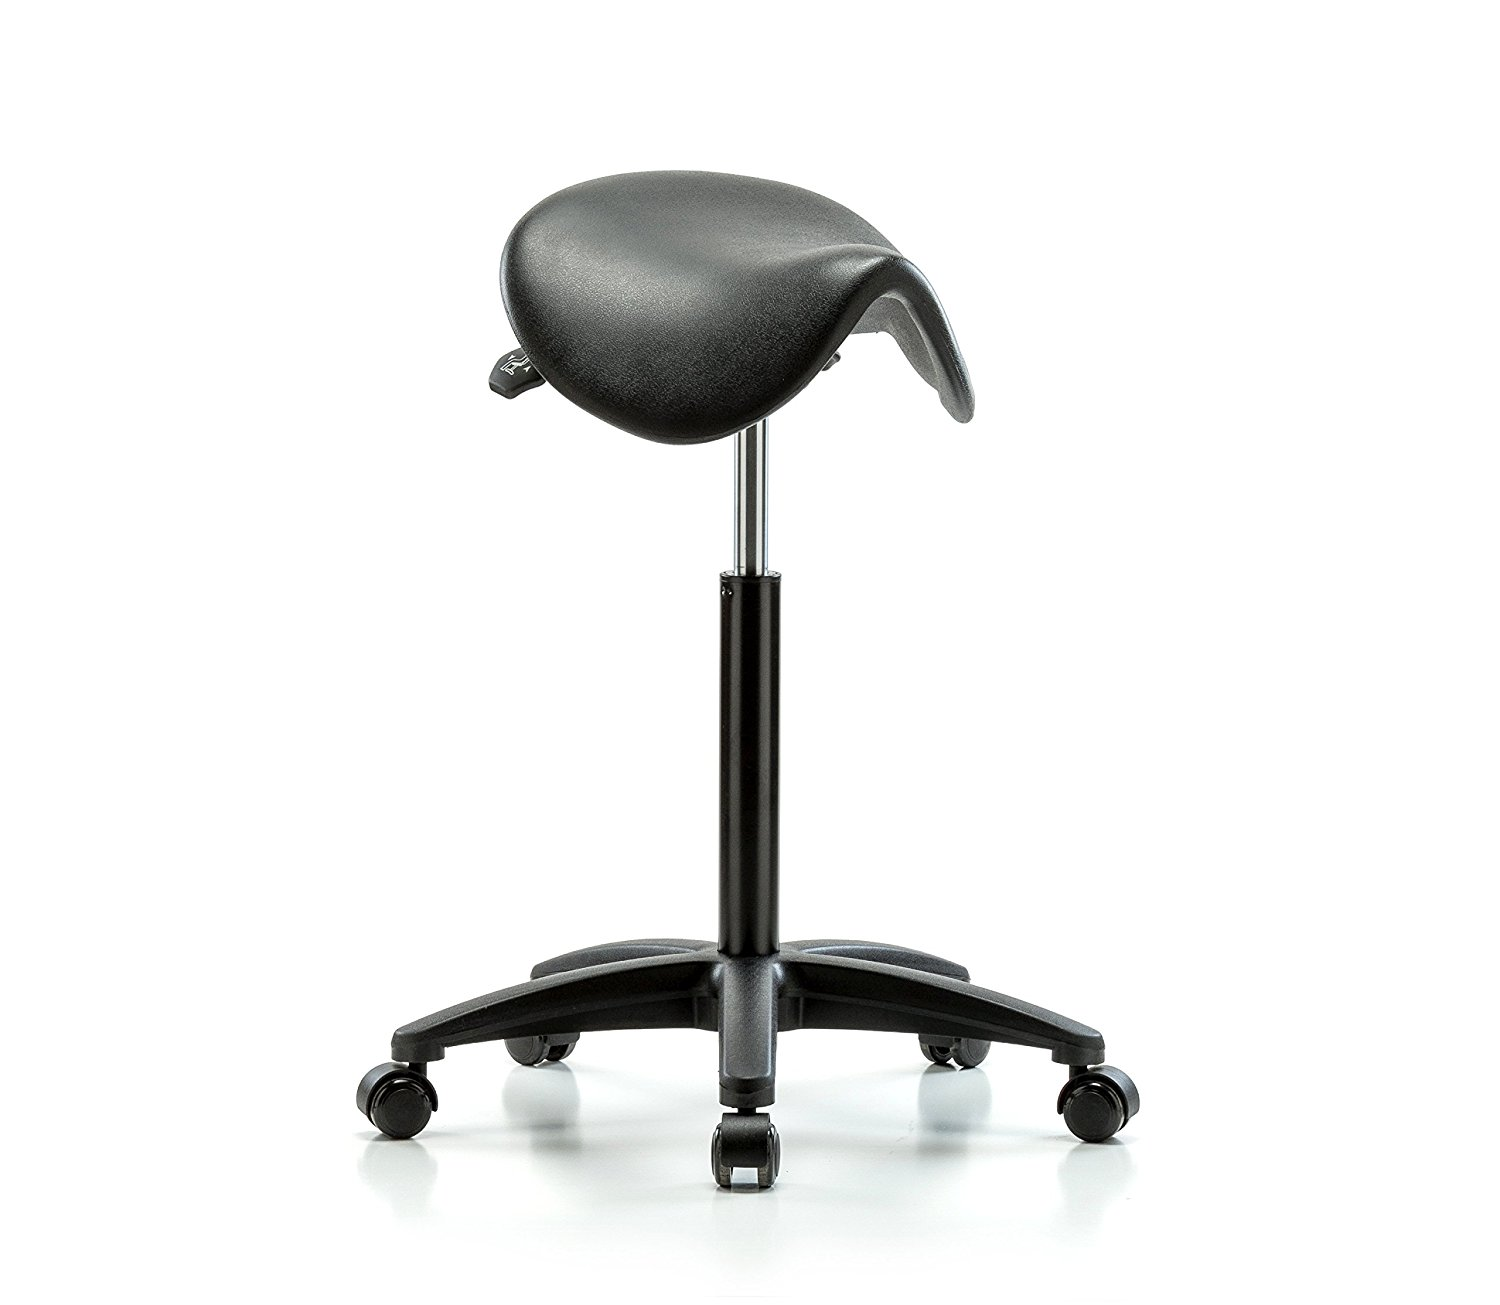 Perch Saddle Stool (Glides)